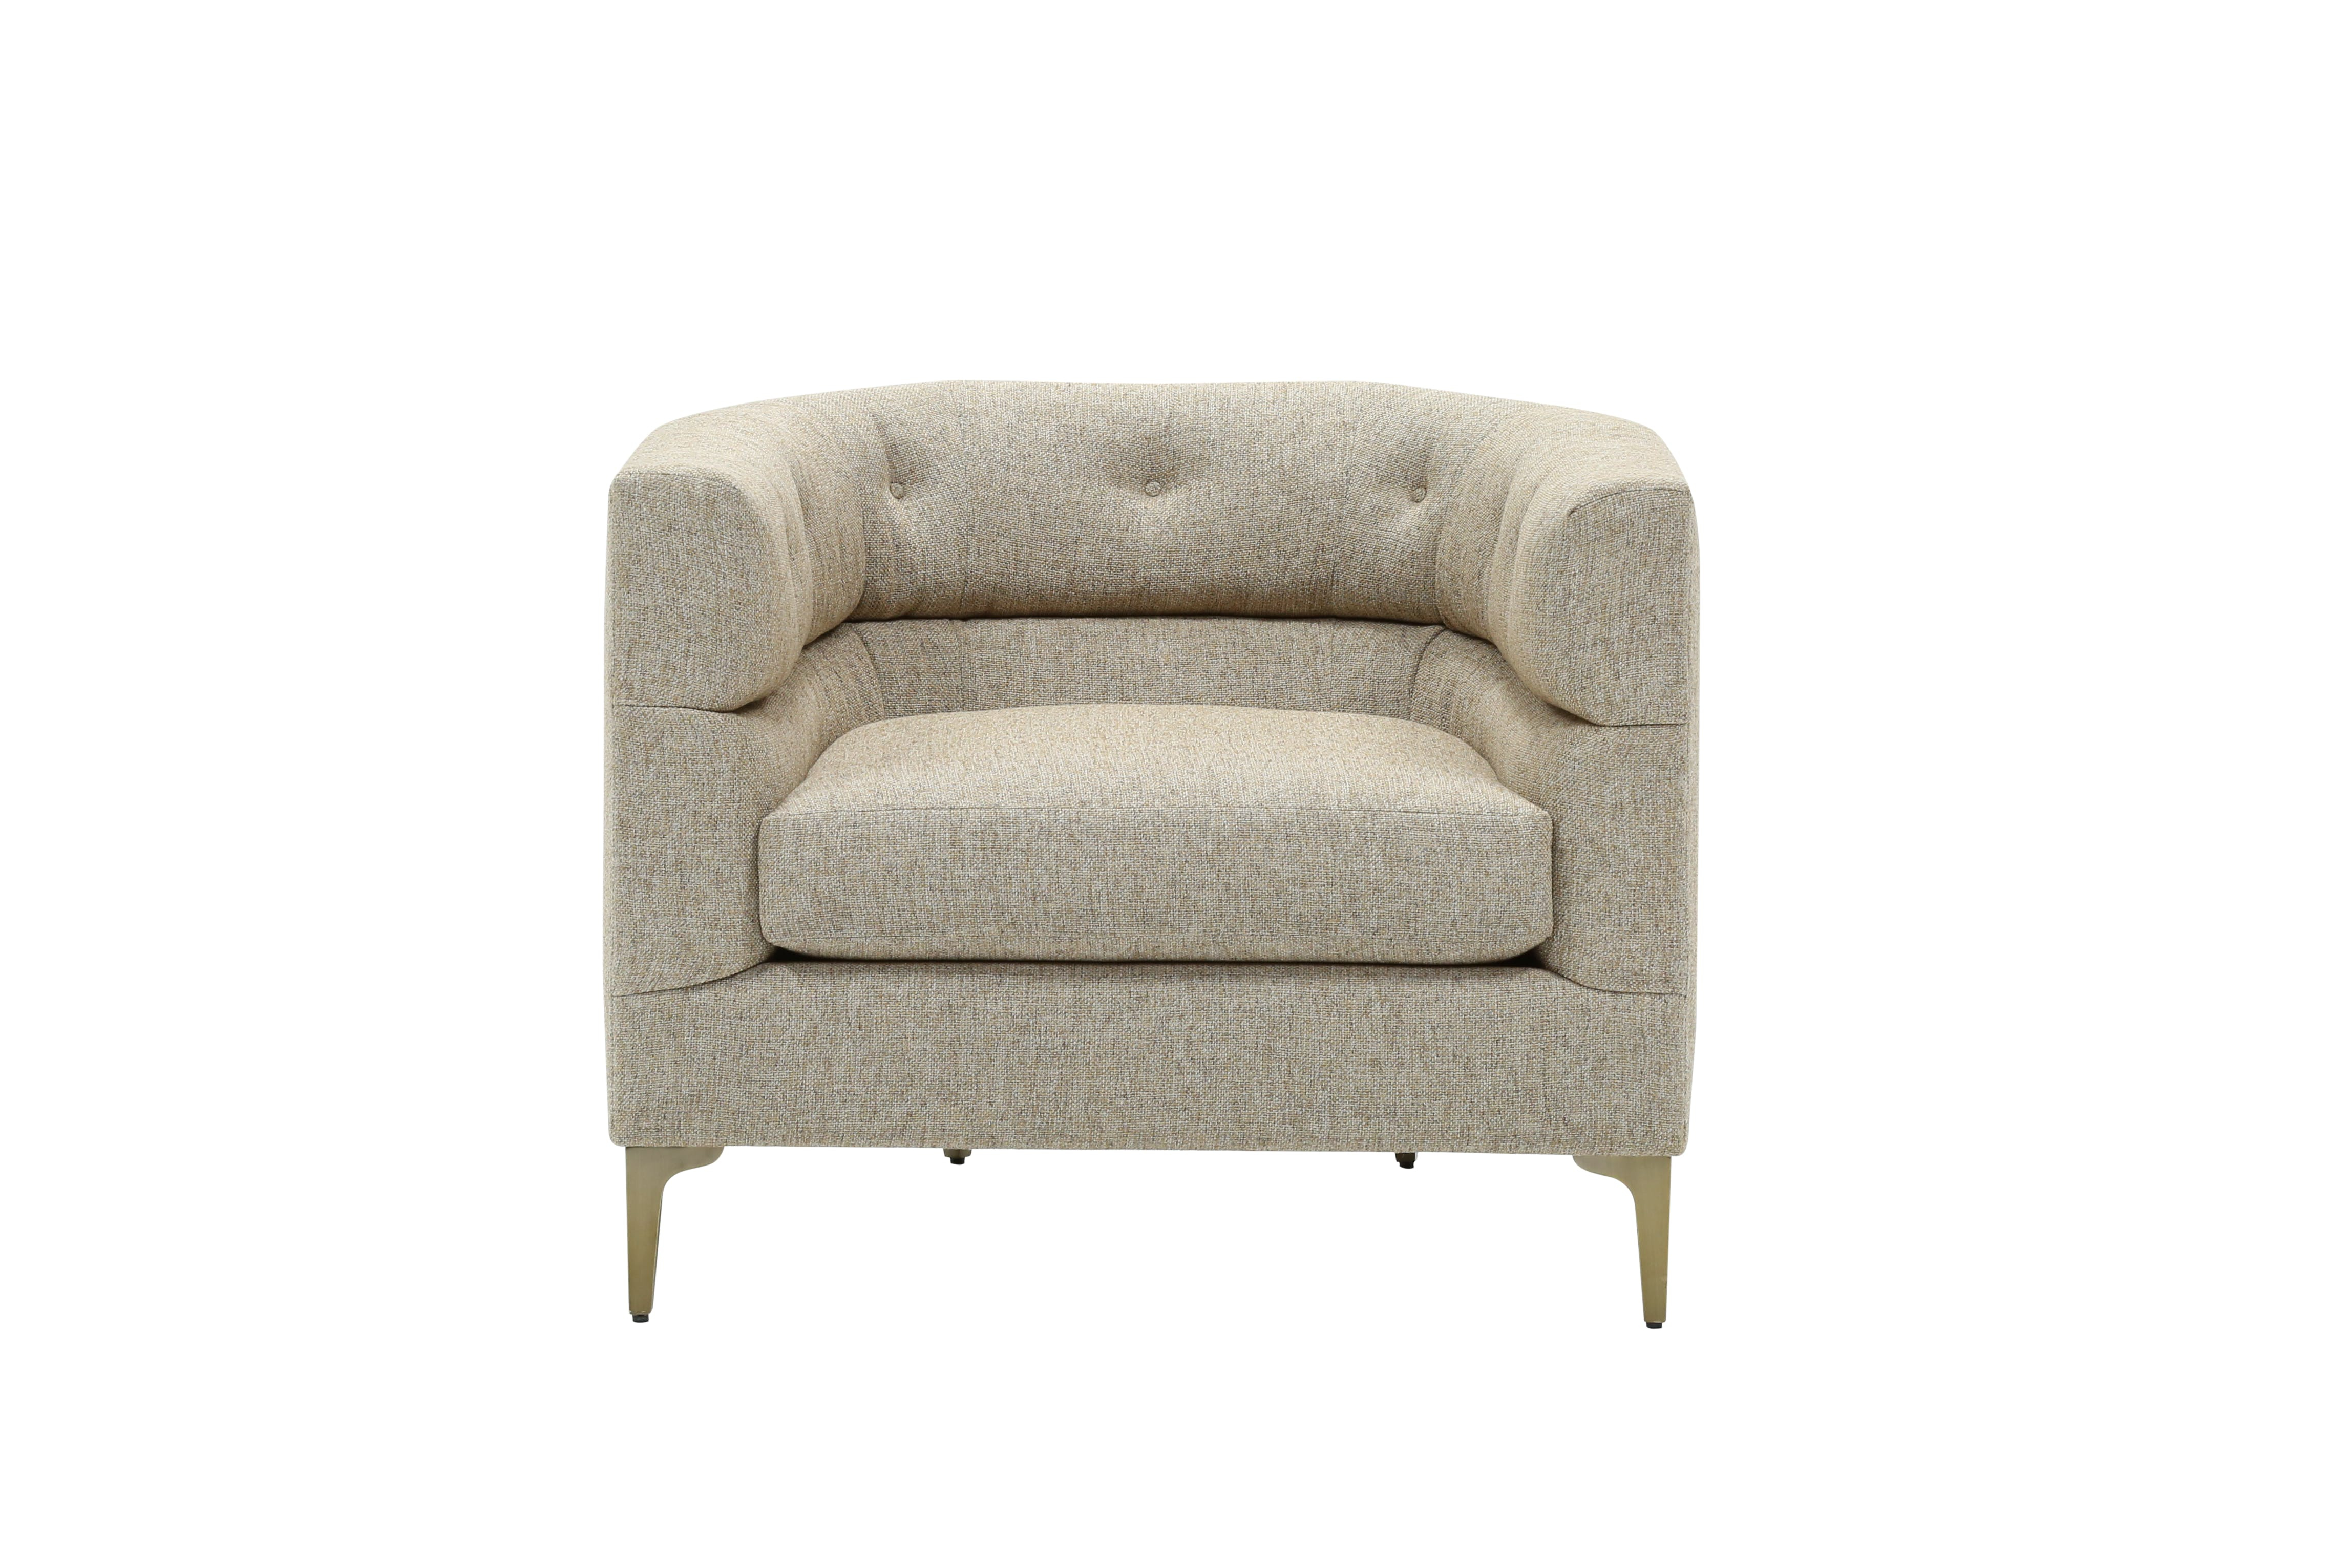 Nate Berkus Just Launched A Home Collection With Hubby Jeremiah Pertaining To Ames Arm Sofa Chairs By Nate Berkus And Jeremiah Brent (Image 14 of 20)